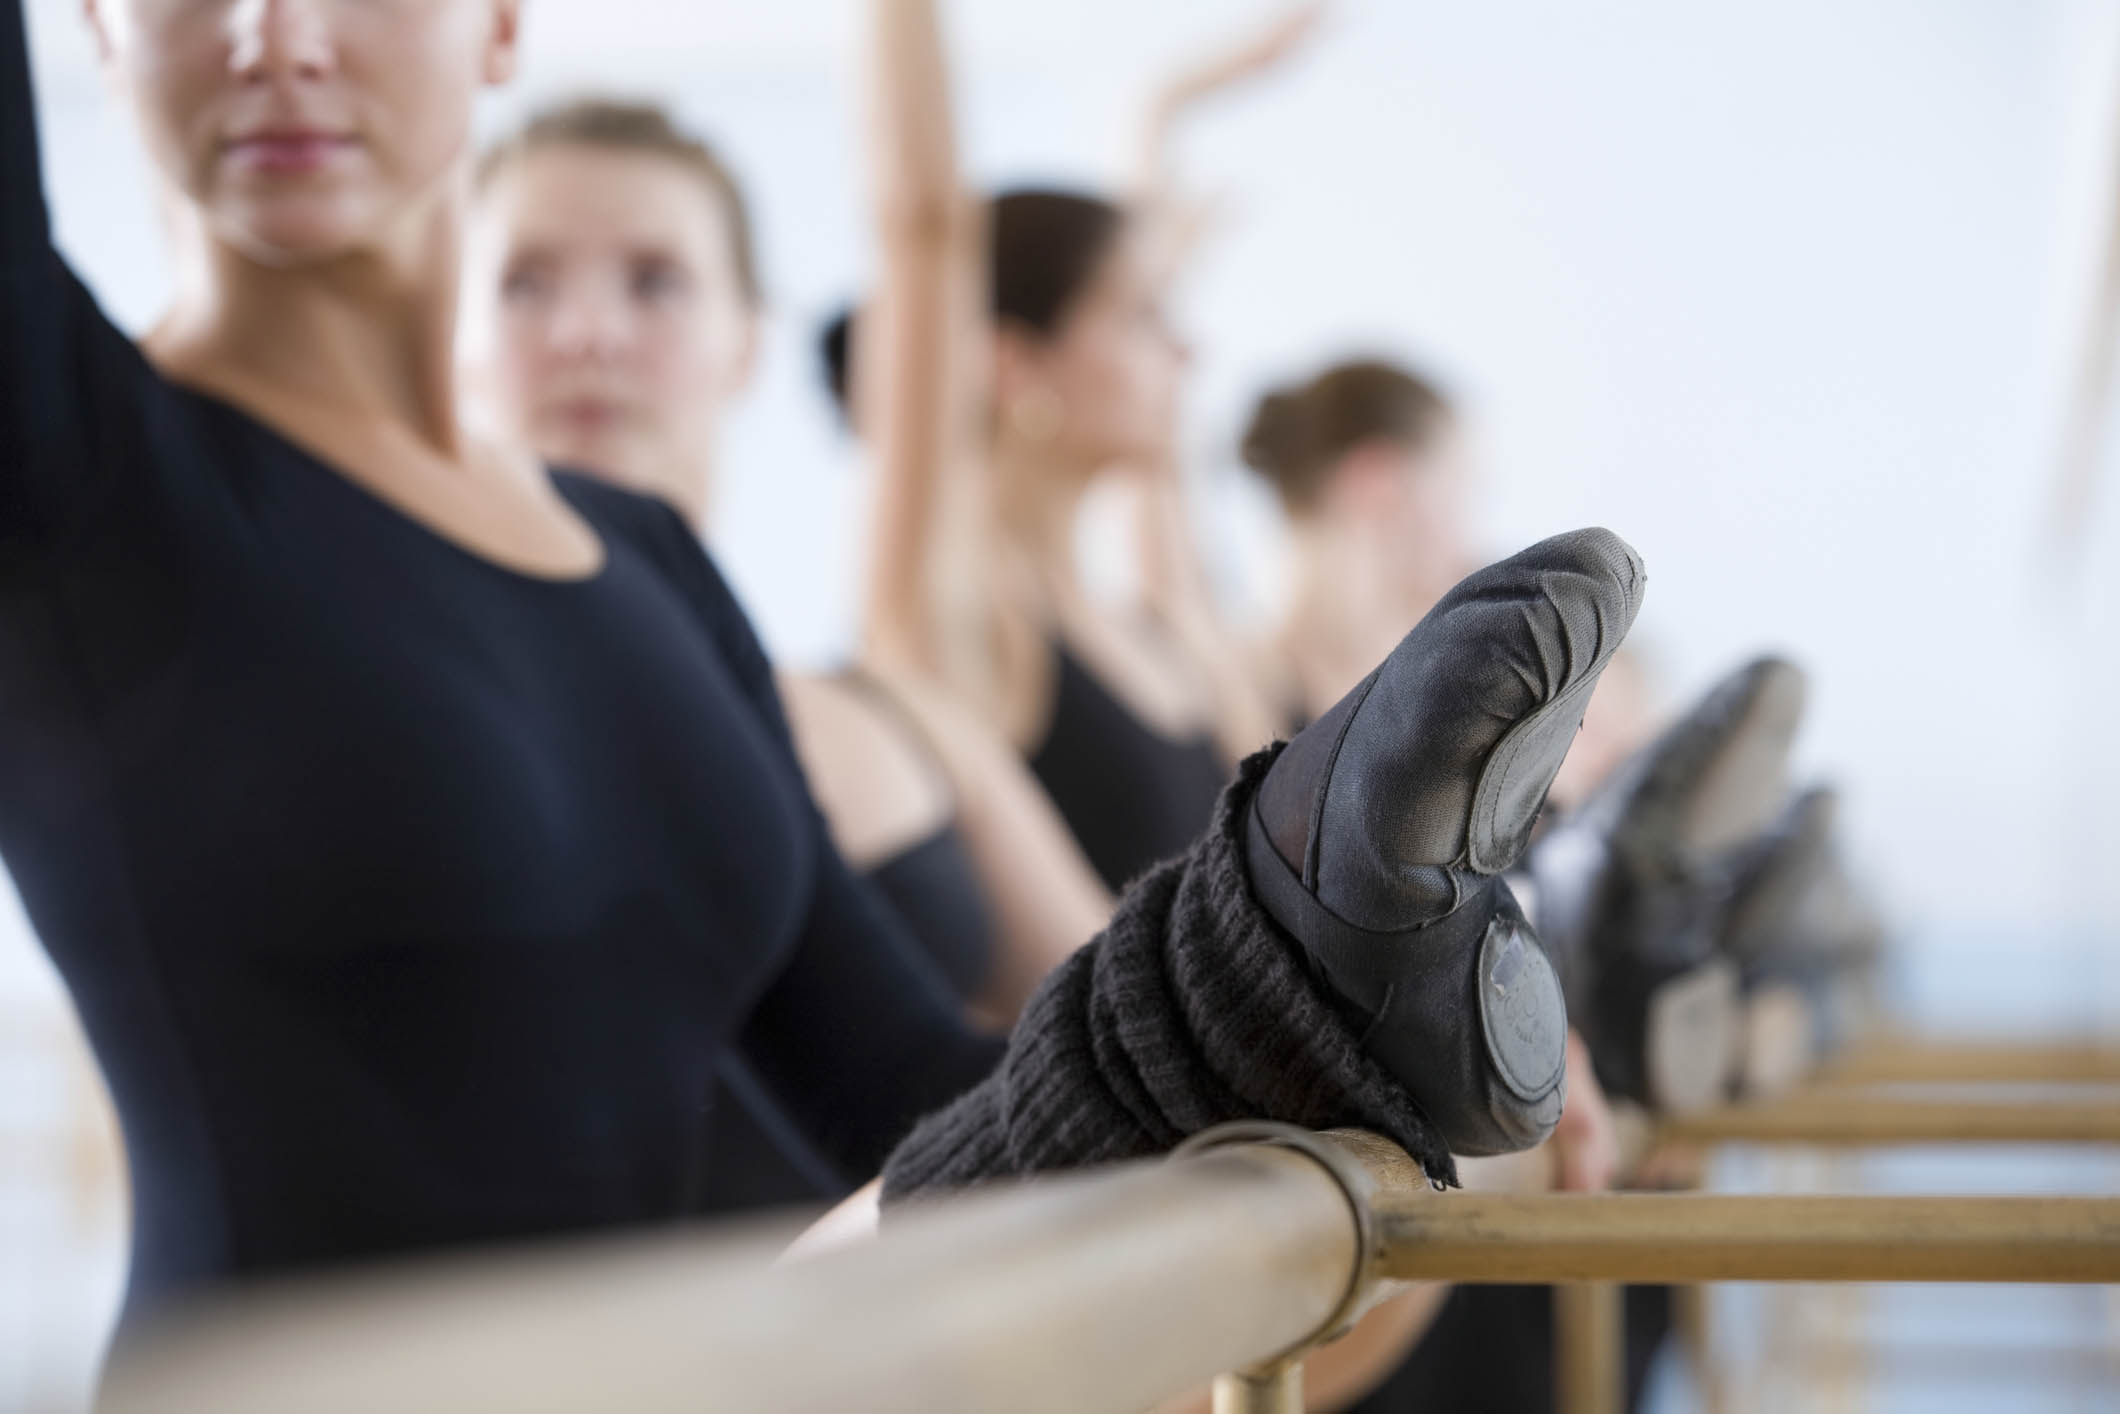 Ballet improves limited flexibility